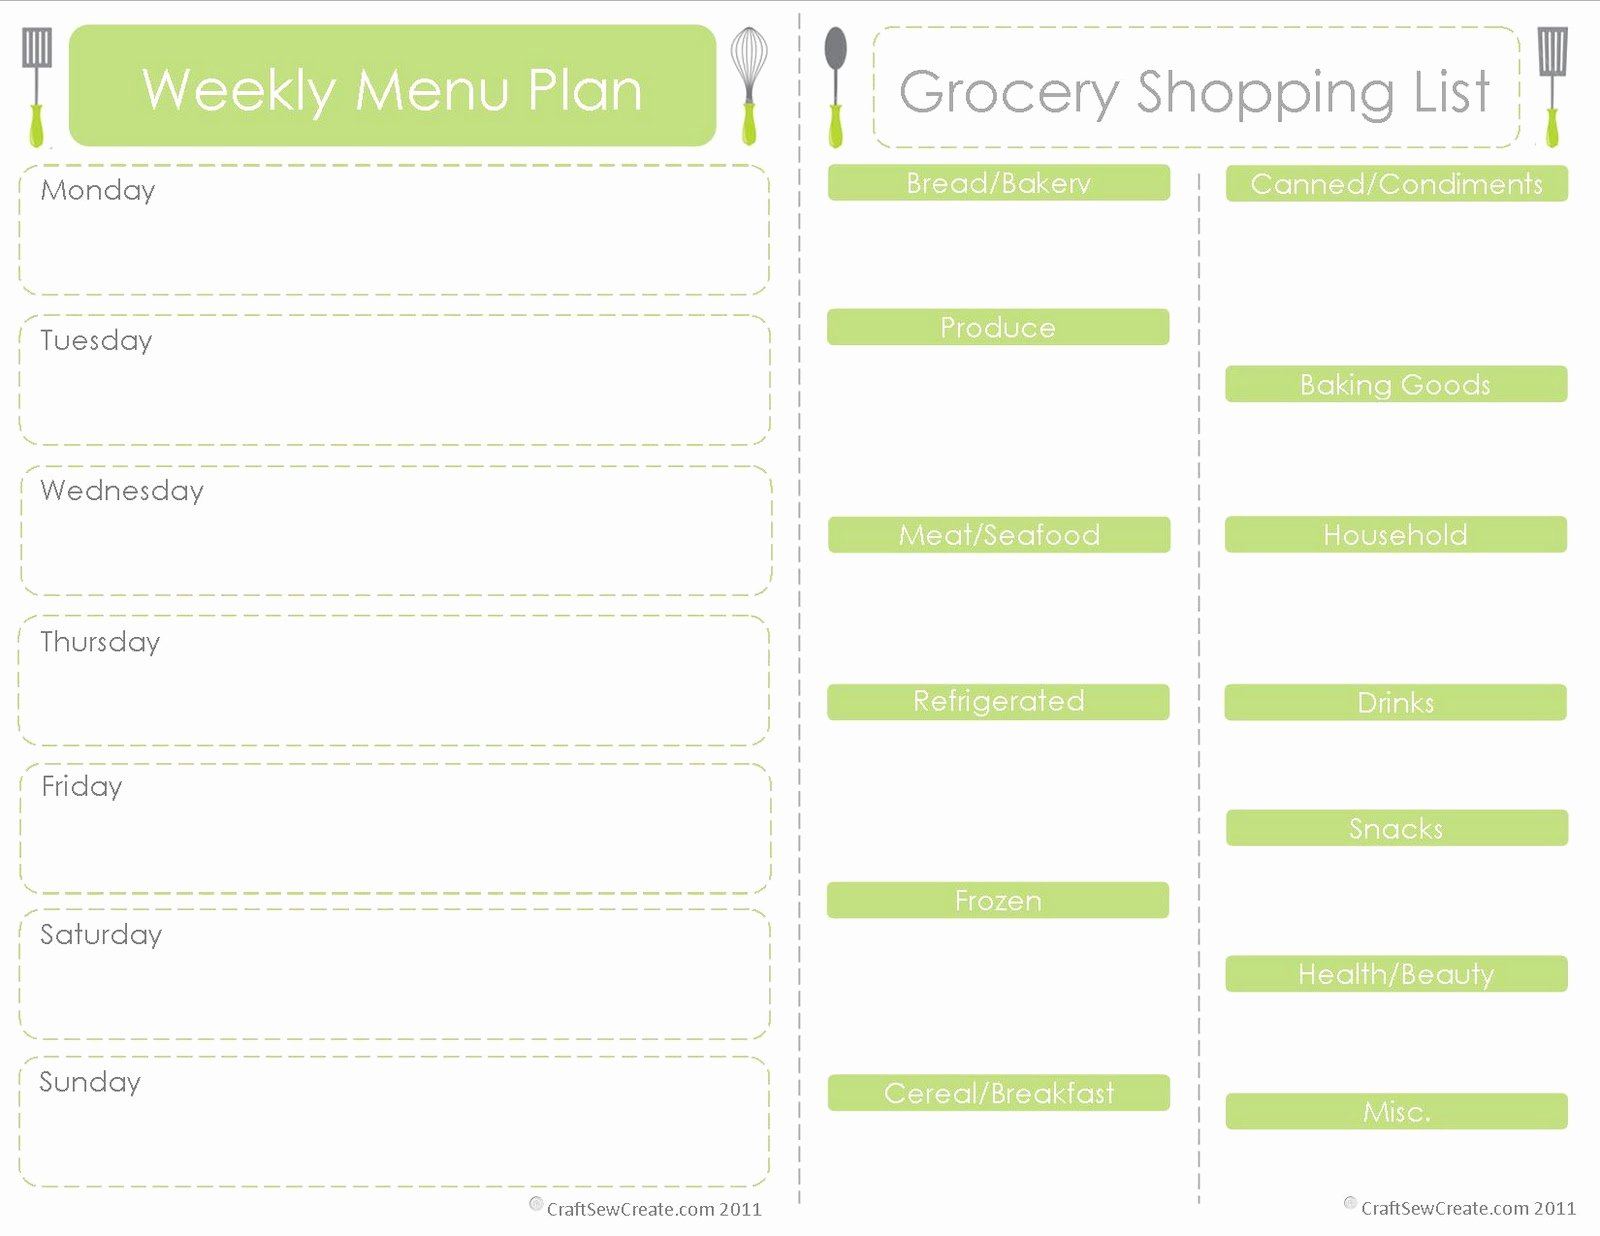 Monthly Meal Planner Template Awesome Craft Sew Create Free Printable Menu Plan Shopping List